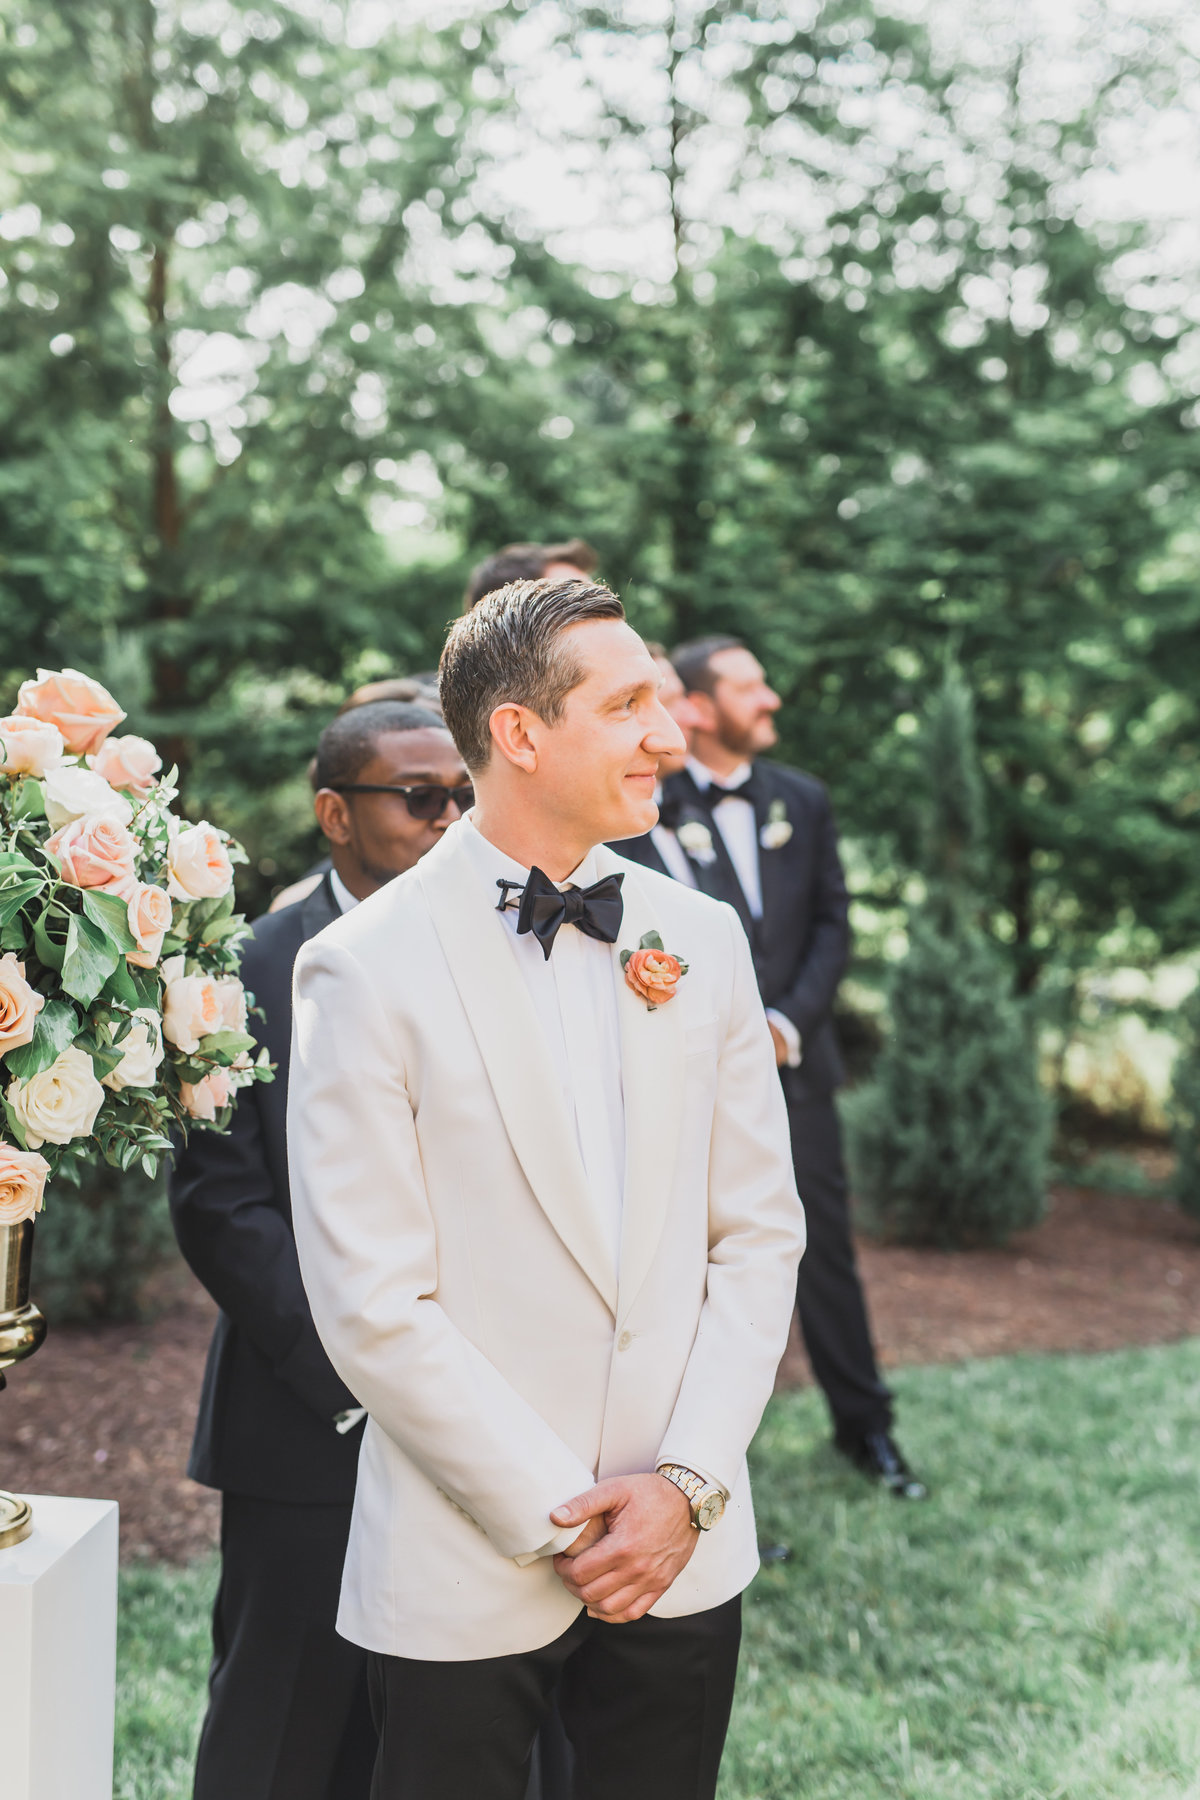 Washington D.C. Wedding Photographer - M Harris Studios-675